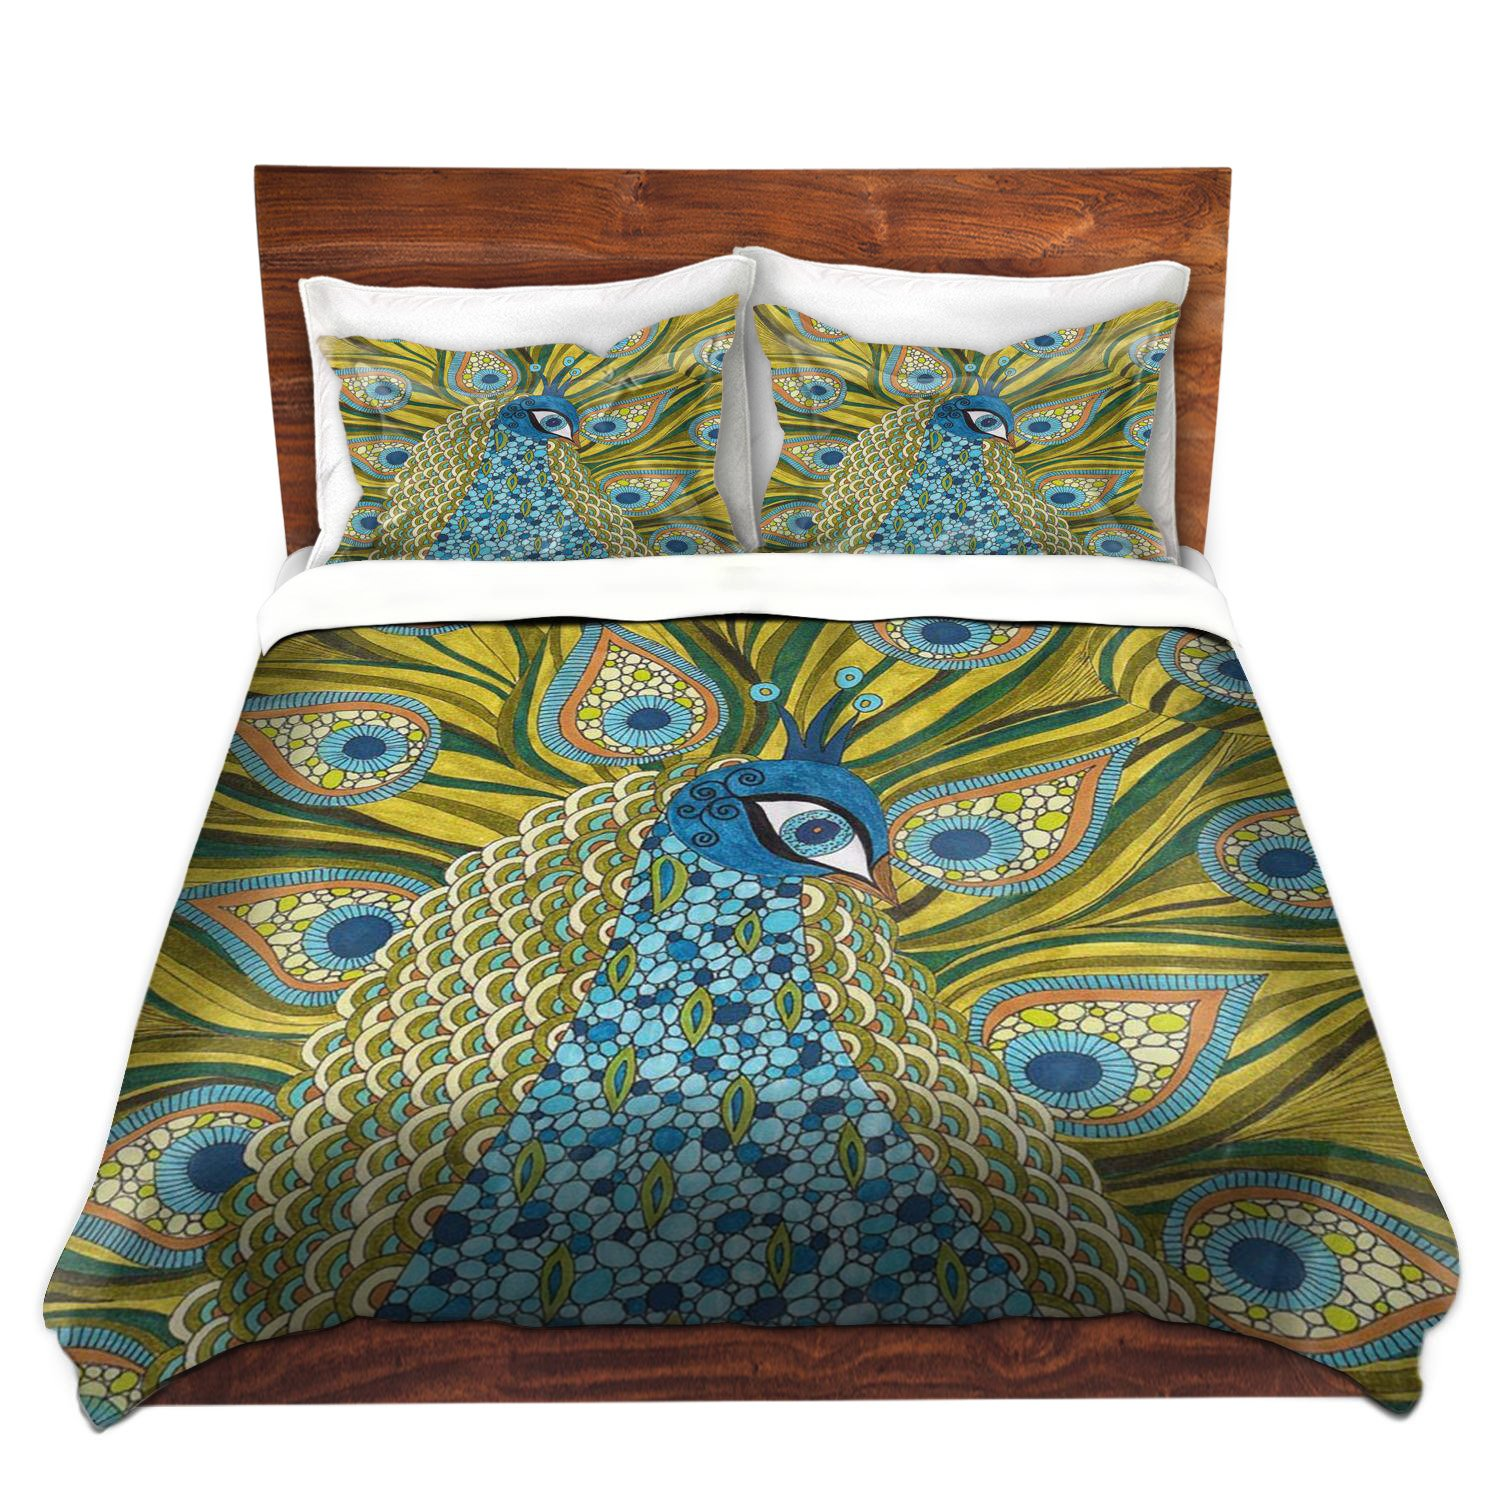 DiaNoche Designs Valerie Lorimer the Peacock Brushed Twill Home Decor Bedding Cover, 7 Queen Duvet Sham Set